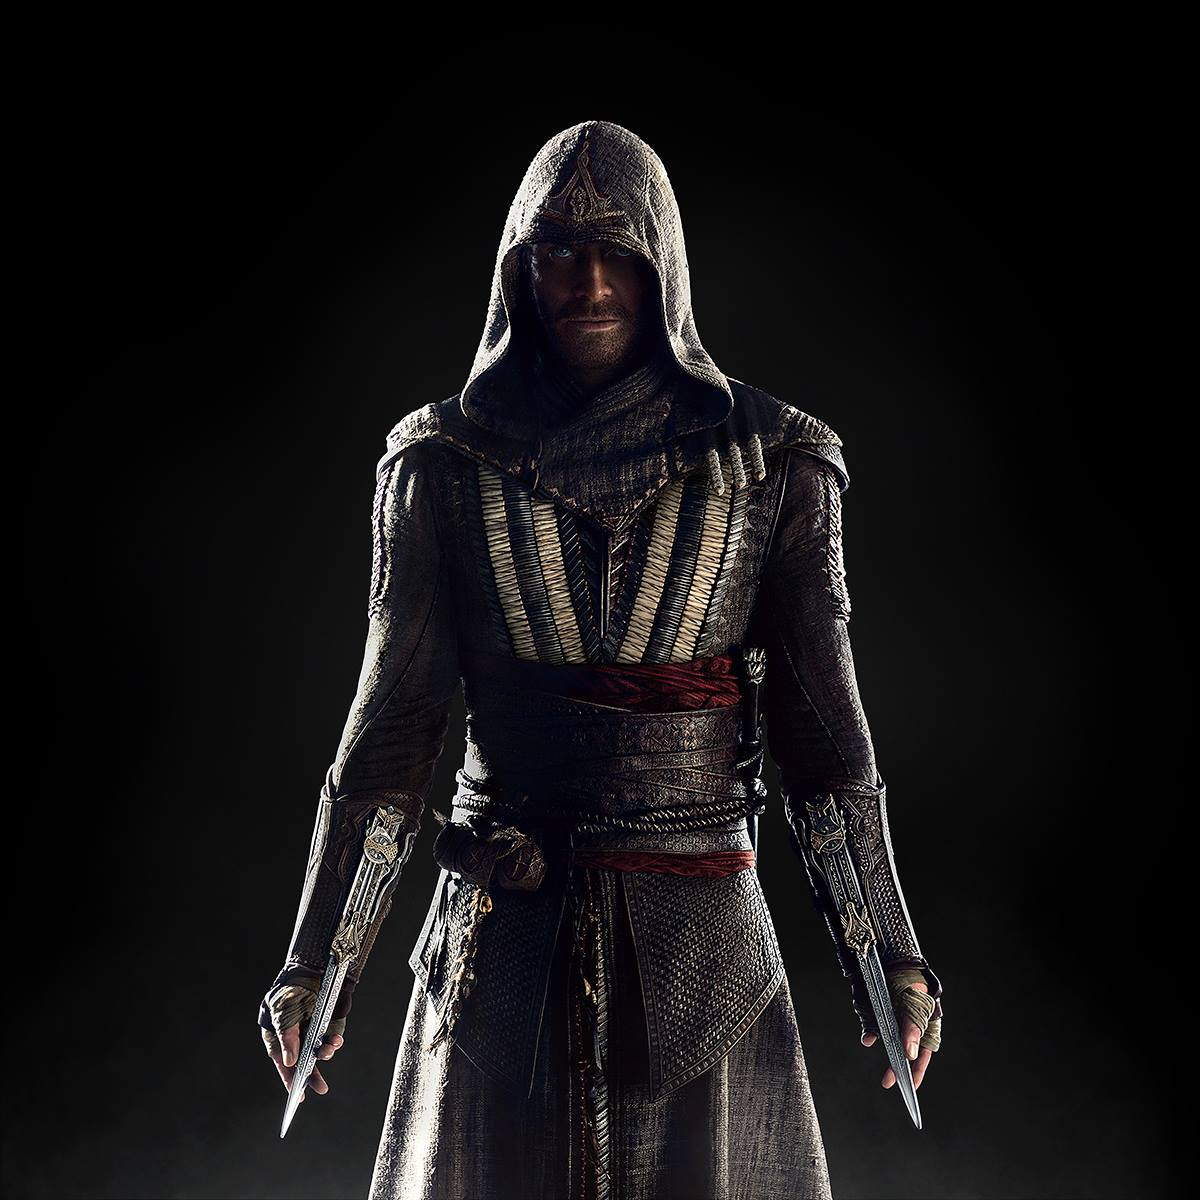 Michael Fassbender image, Assassin's Creed movie